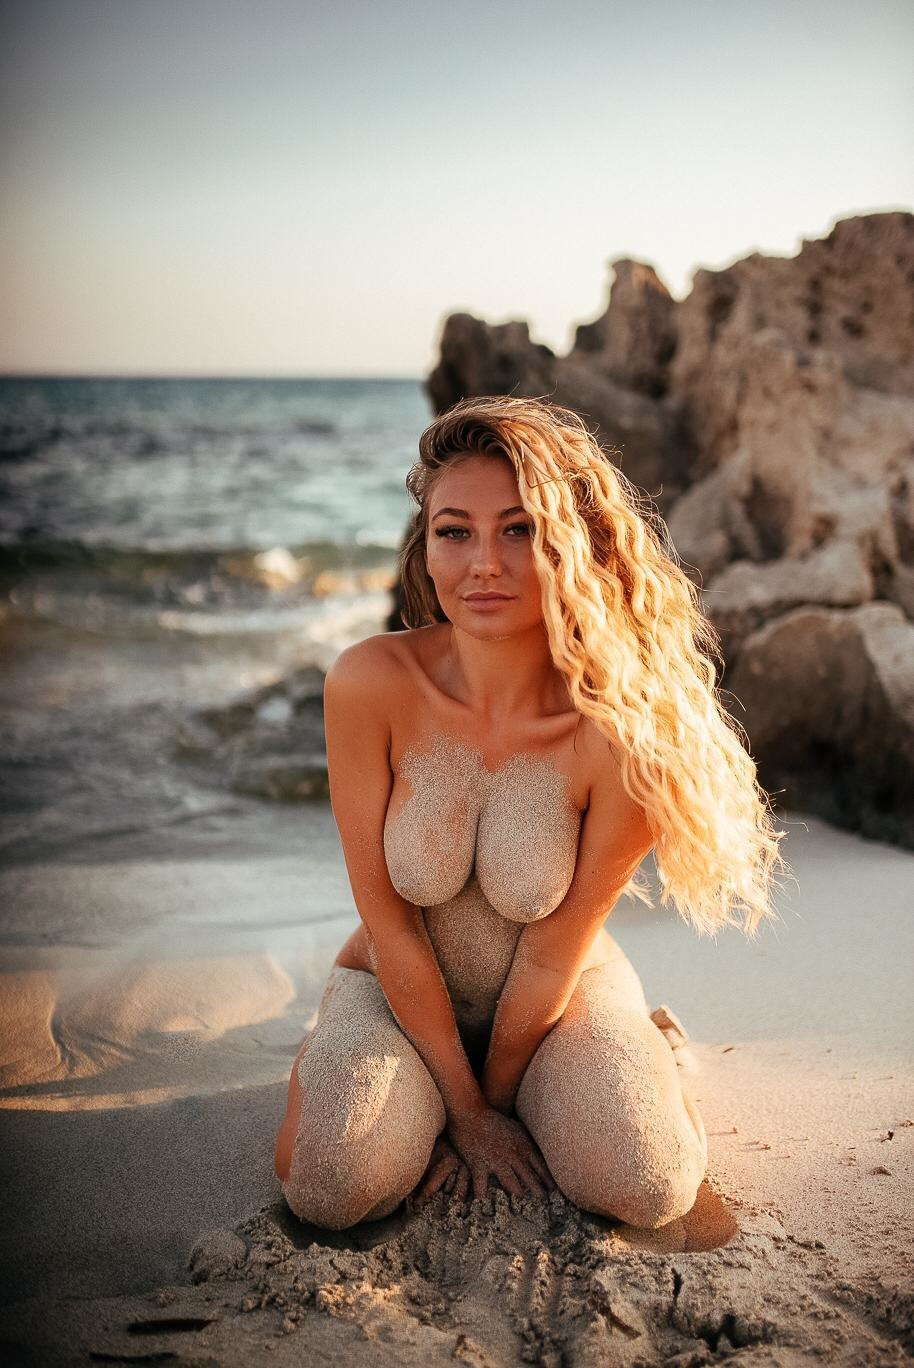 jessica lesca onlyfans fappenings.com 15